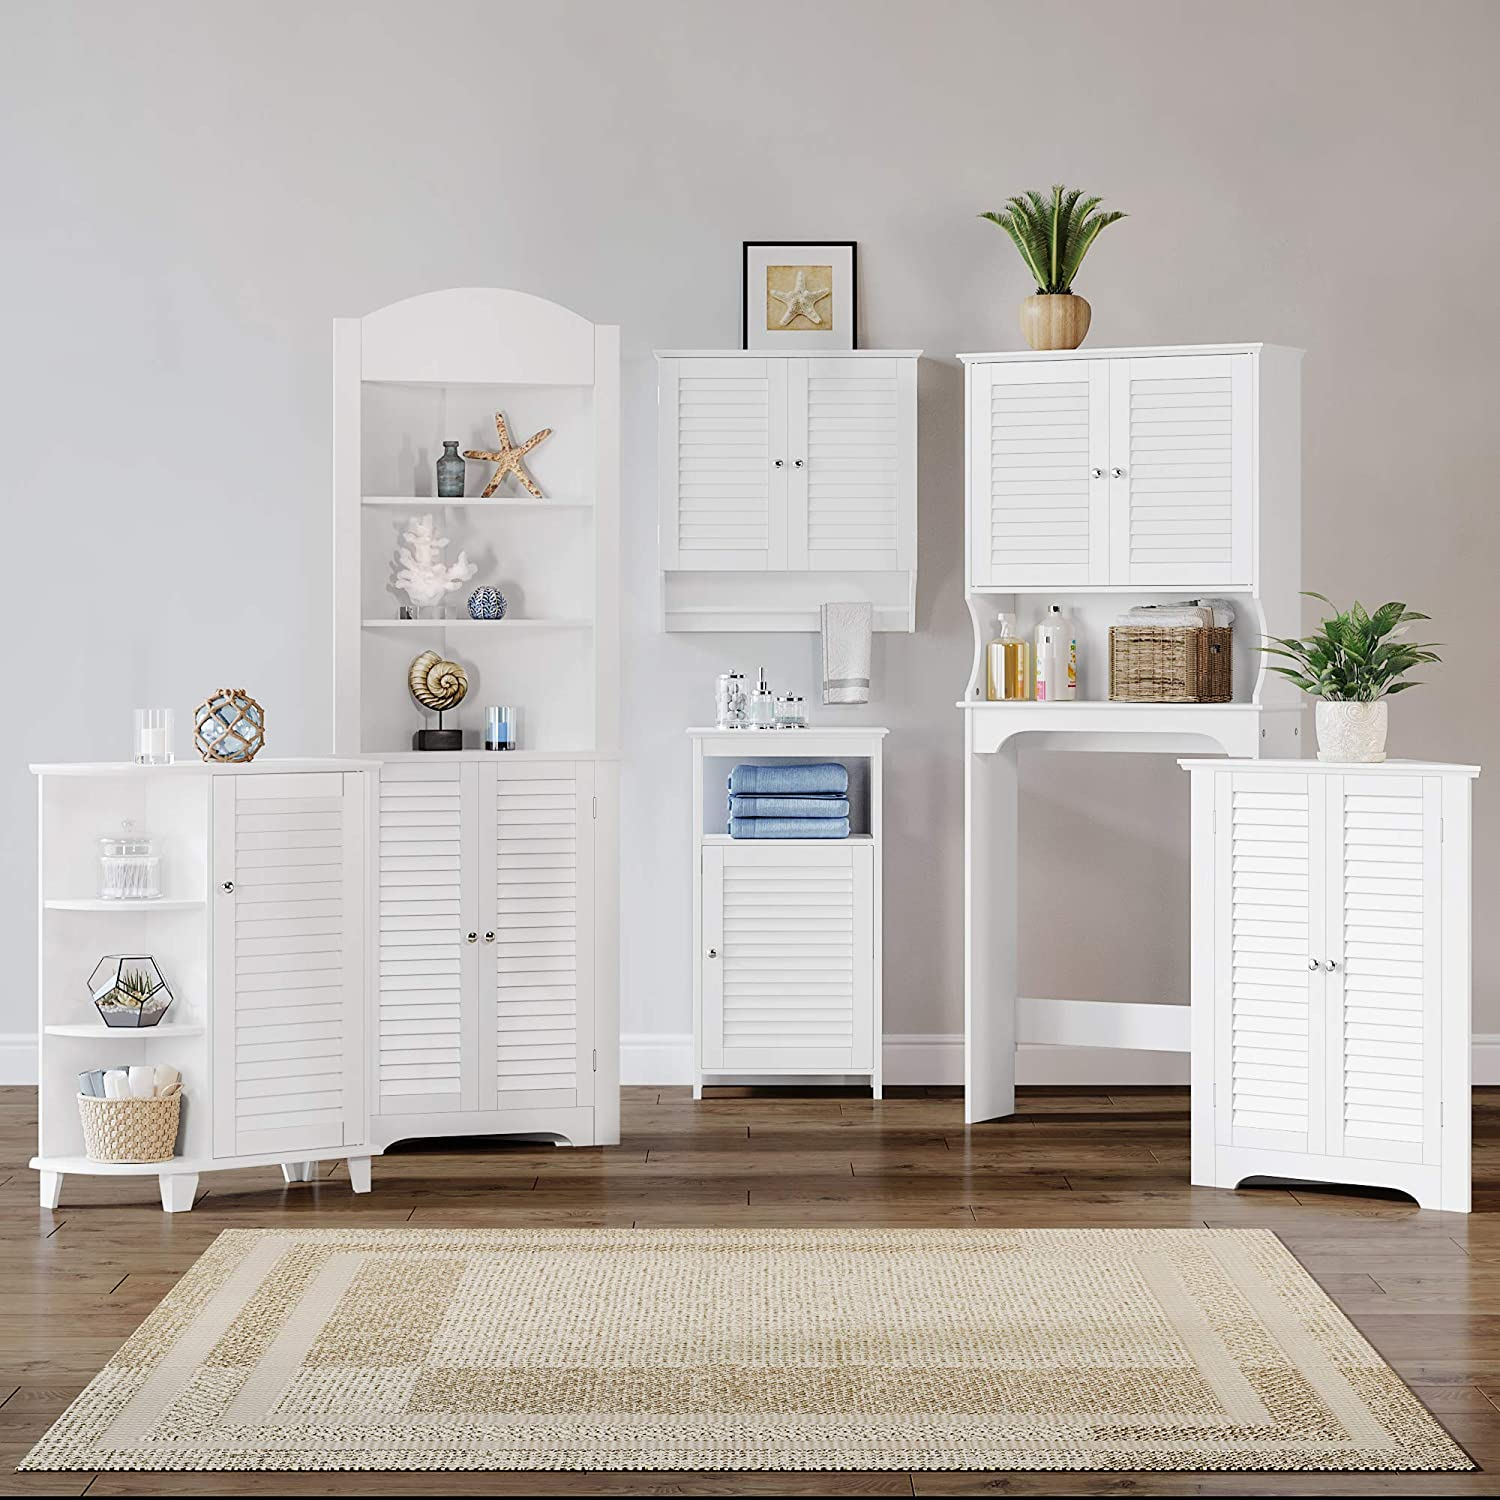 B005Q0EBO0 RiverRidge Ellsworth Collection Spacesaver, White 510AqVjk6DL.SL1500_